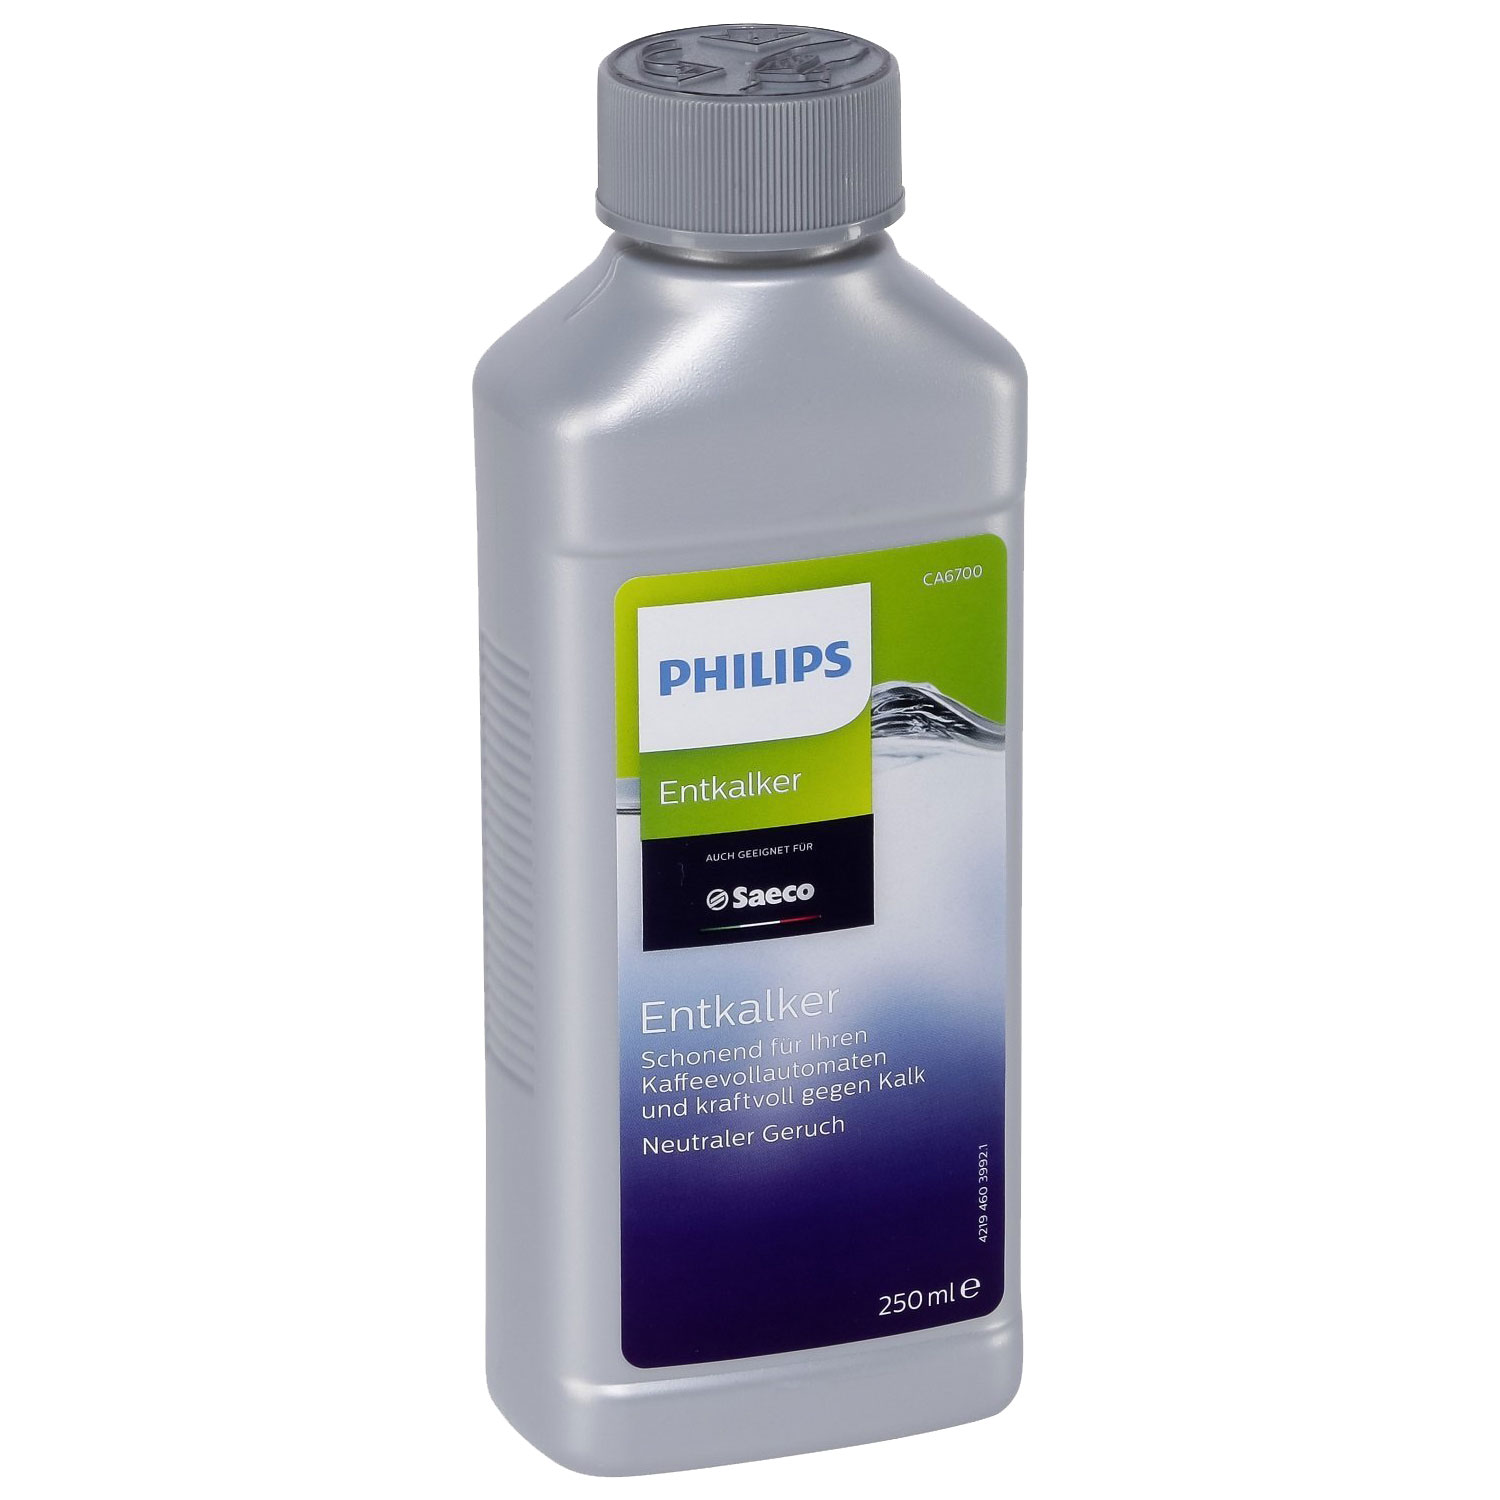 PHILIPS SAECO CA6700 Entkalker 250ml